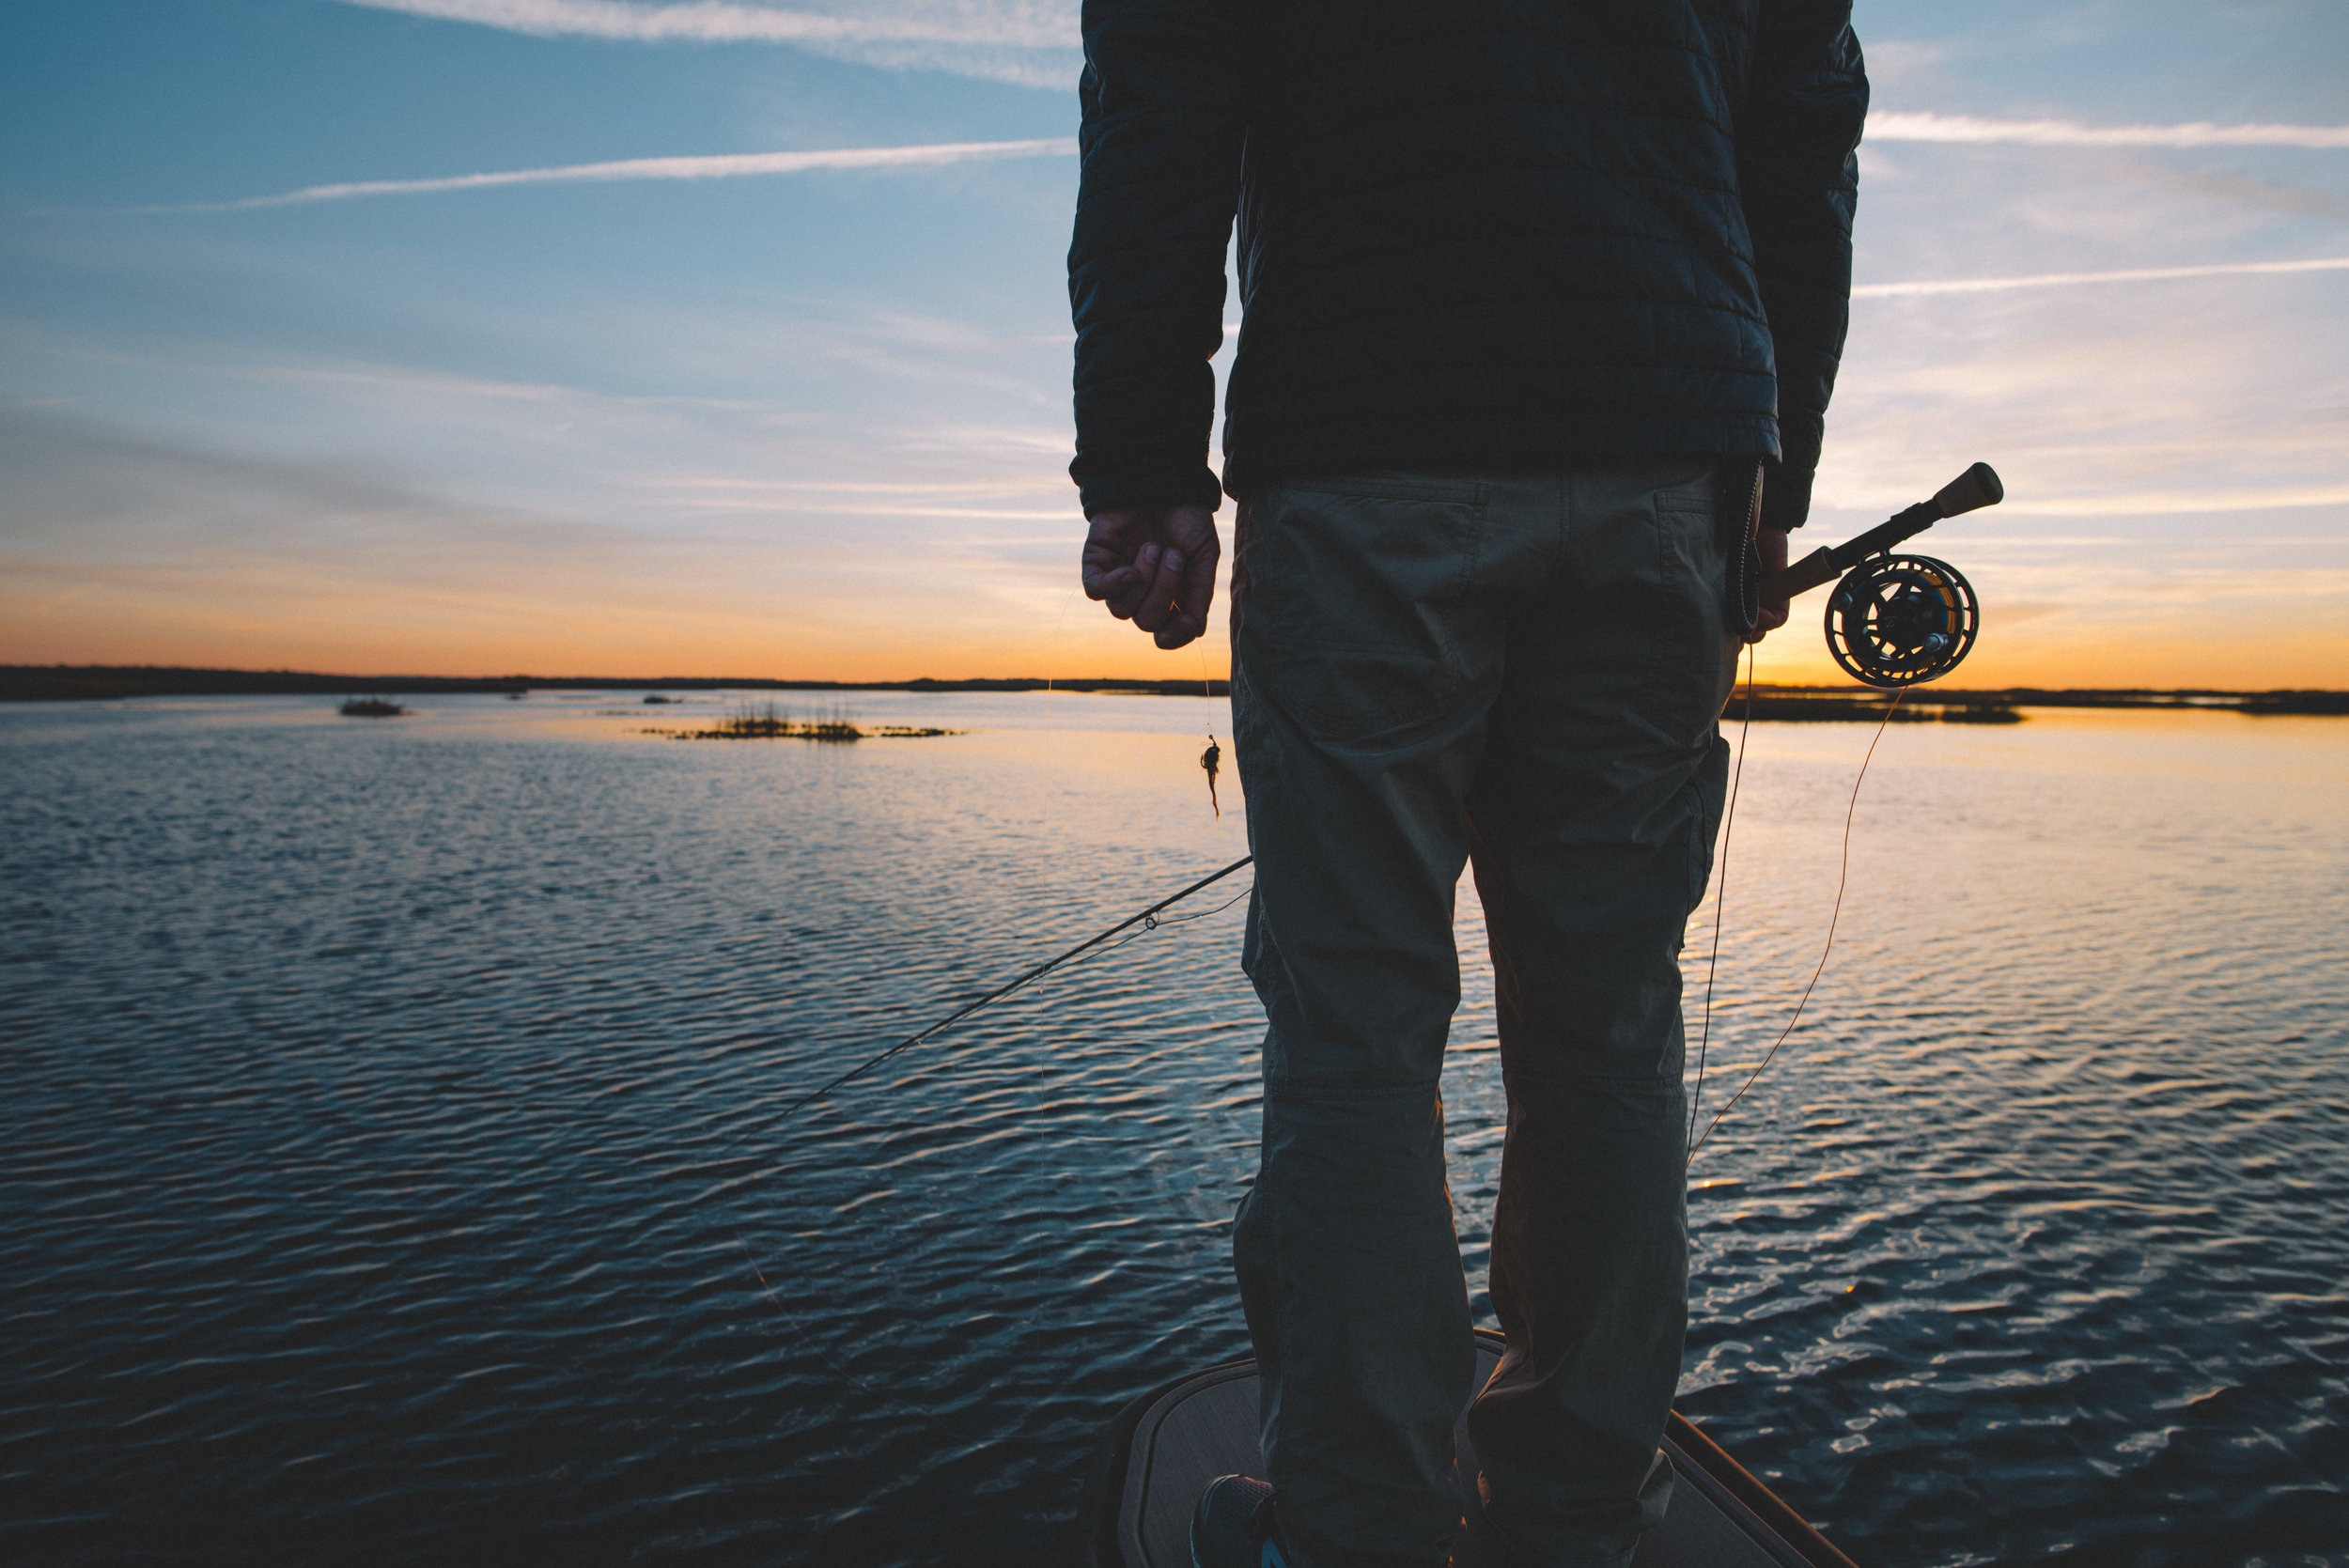 Copy of Angler standing with fly rod in hand at sunrise